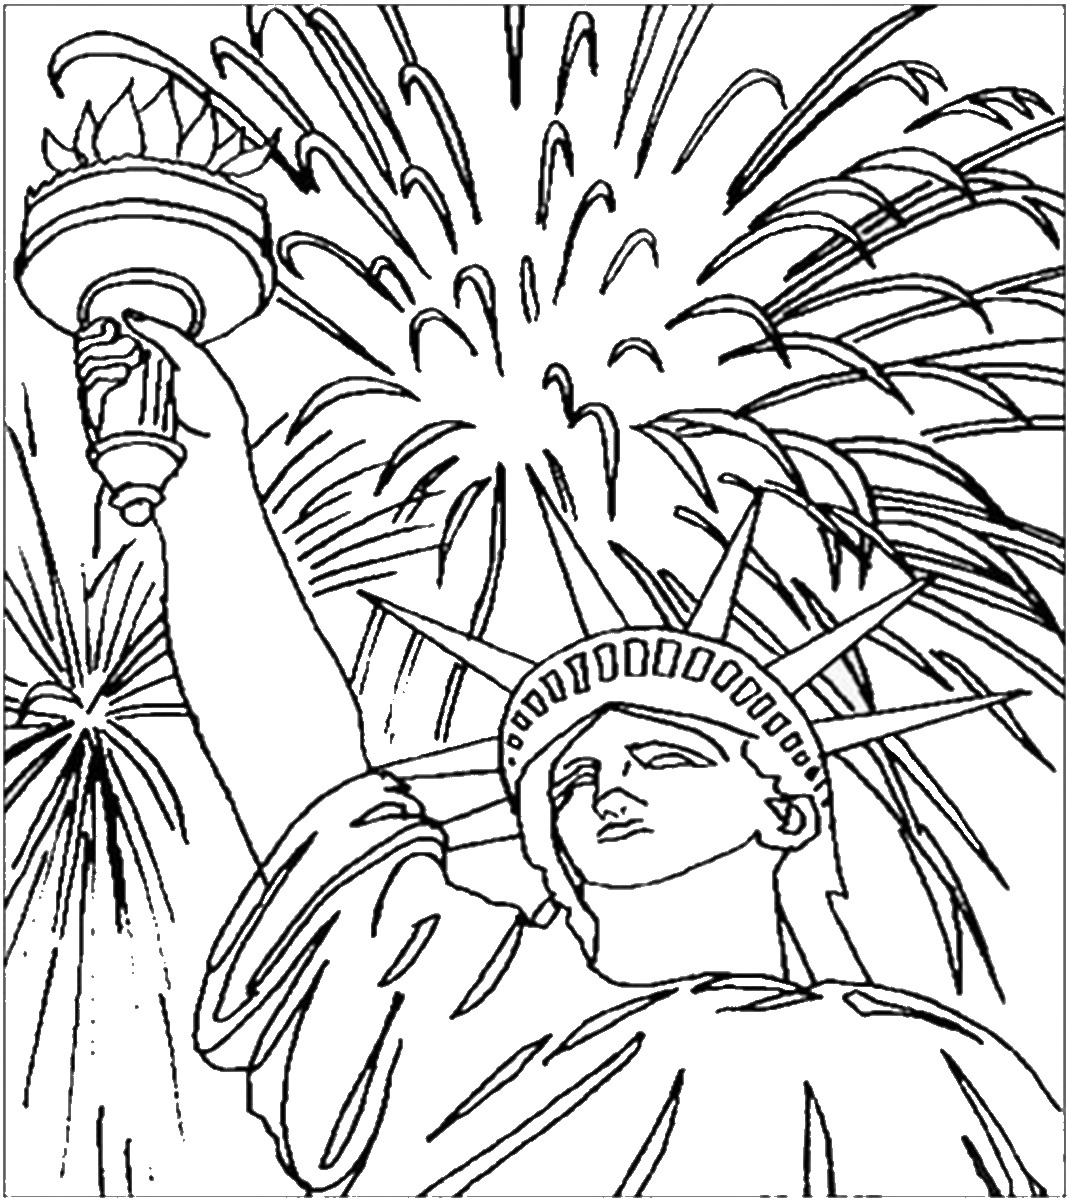 4th of july coloring pages free printable 4th of july coloring pages pages coloring 4th july of